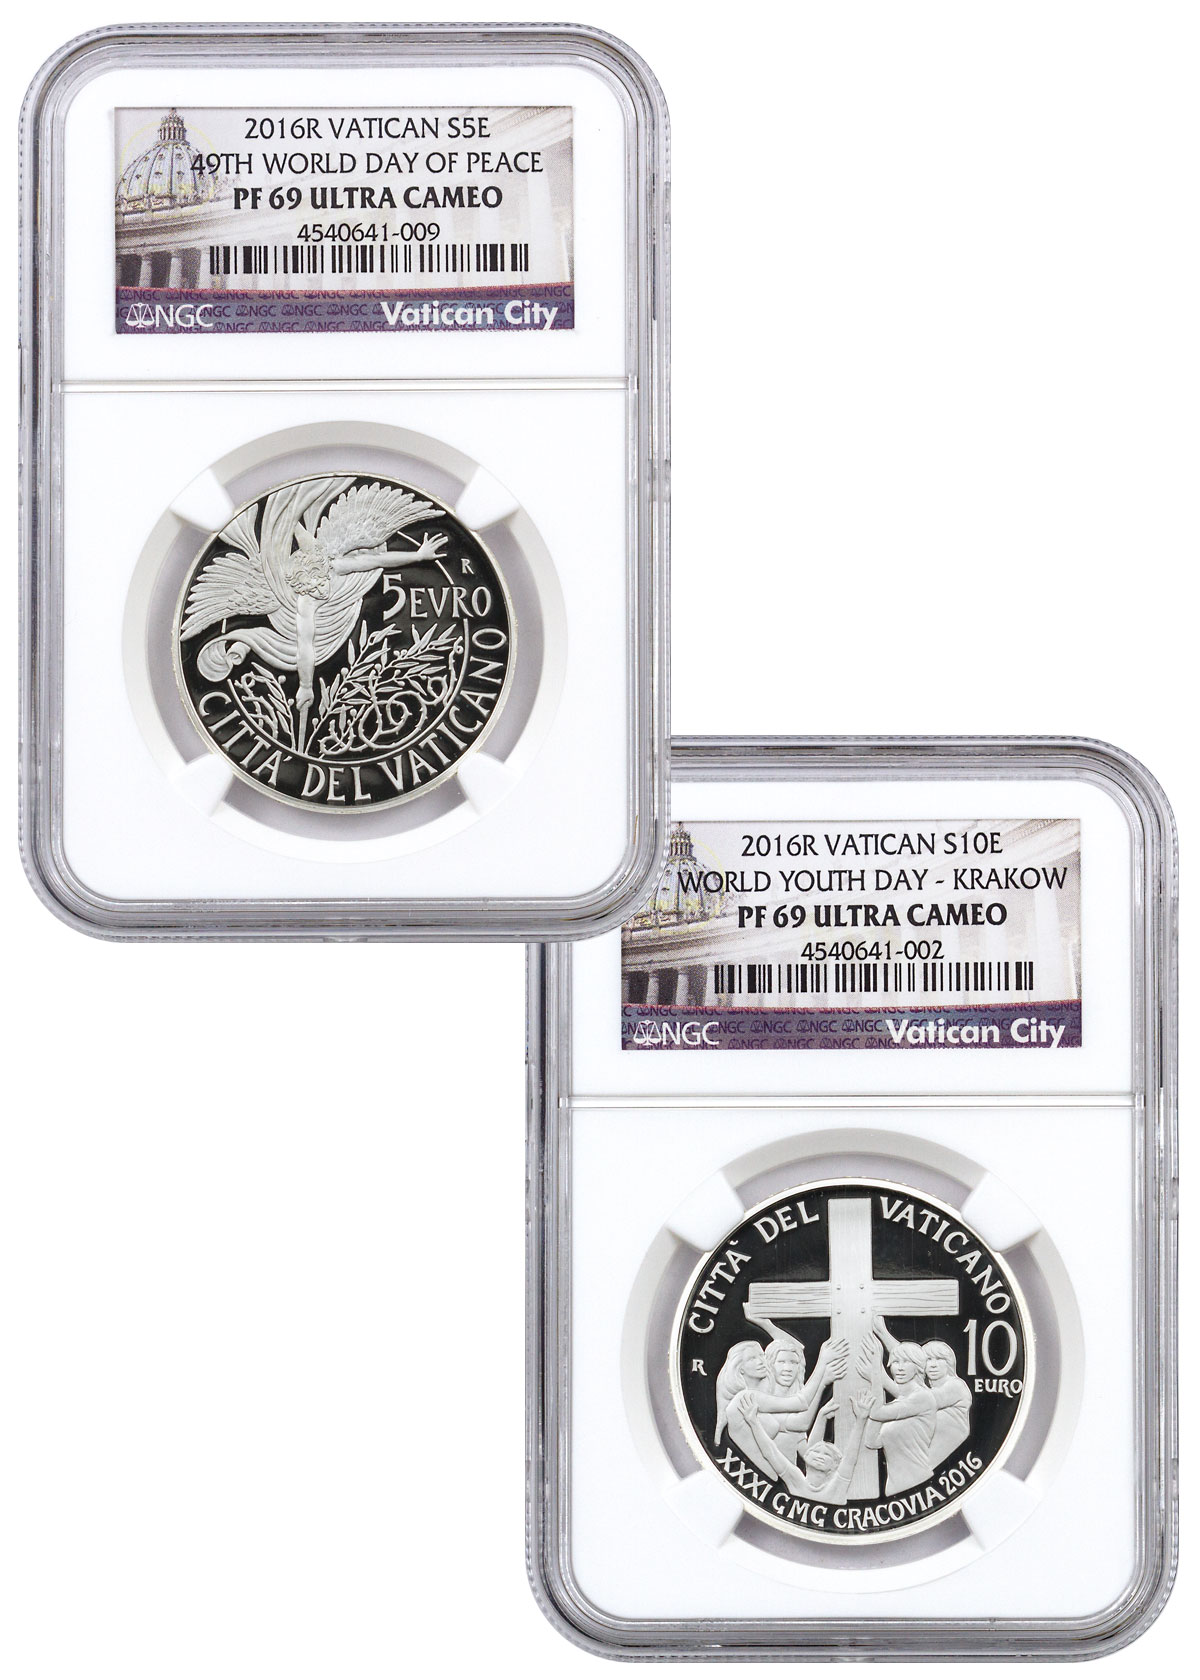 2016-R Vatican City 49th World Day of Peace and World Youth Day Silver Proof €5 Coins NGC PF69 UC (Exclusive Vatican City Label)